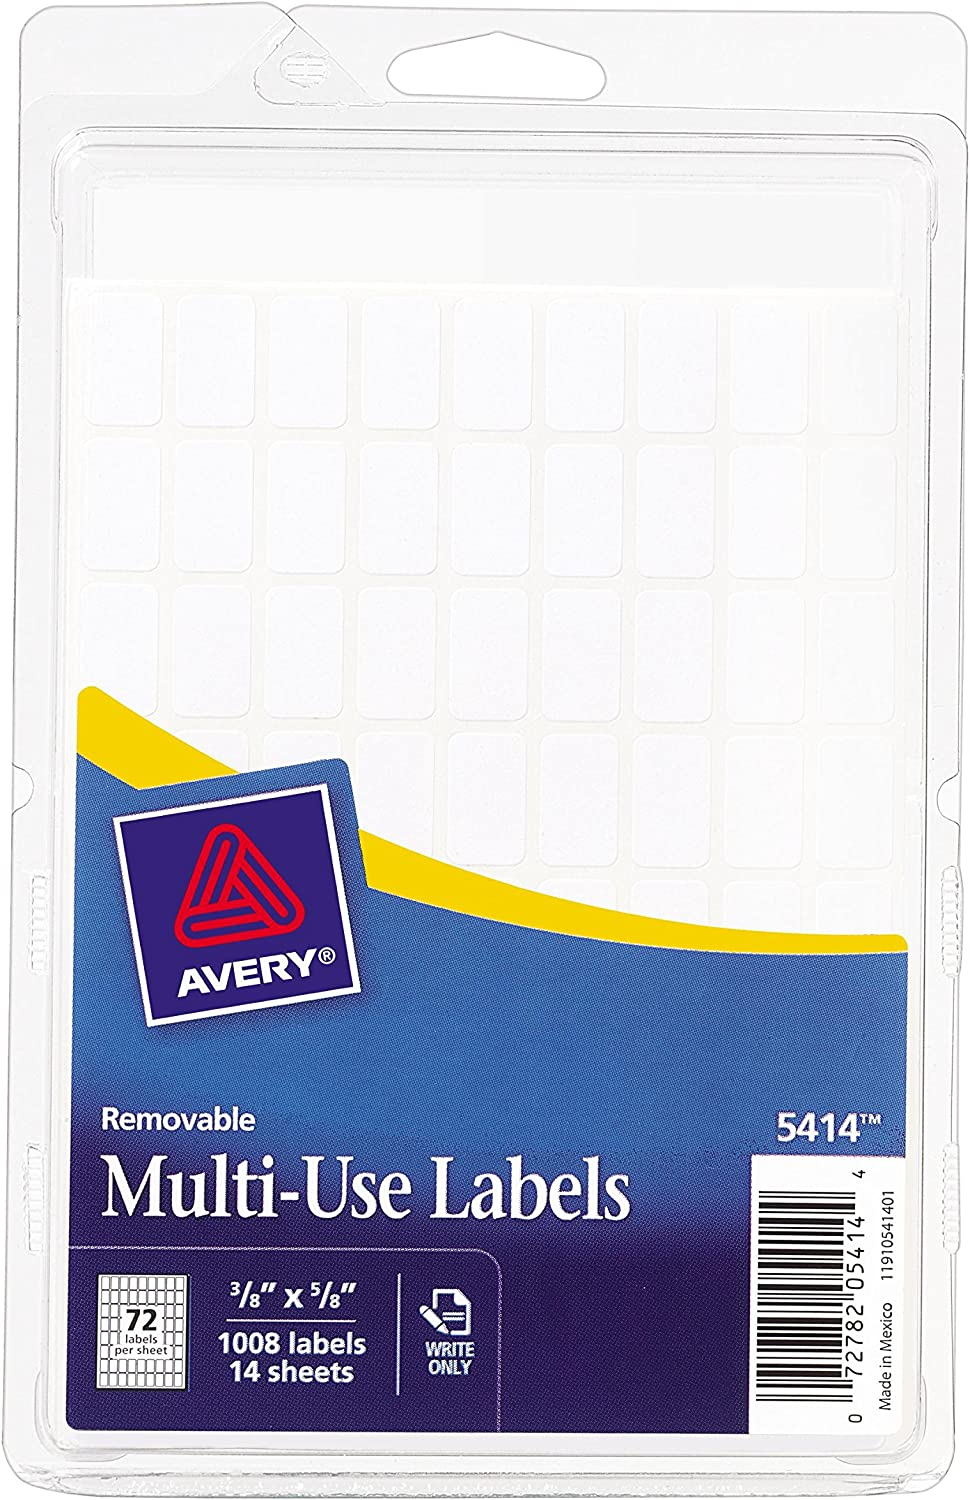 Avery Removable Rectangular Labels, 0.375 x 0.625 Inches, White, Pack of 1008 (5414) : All Purpose Labels : Office Products